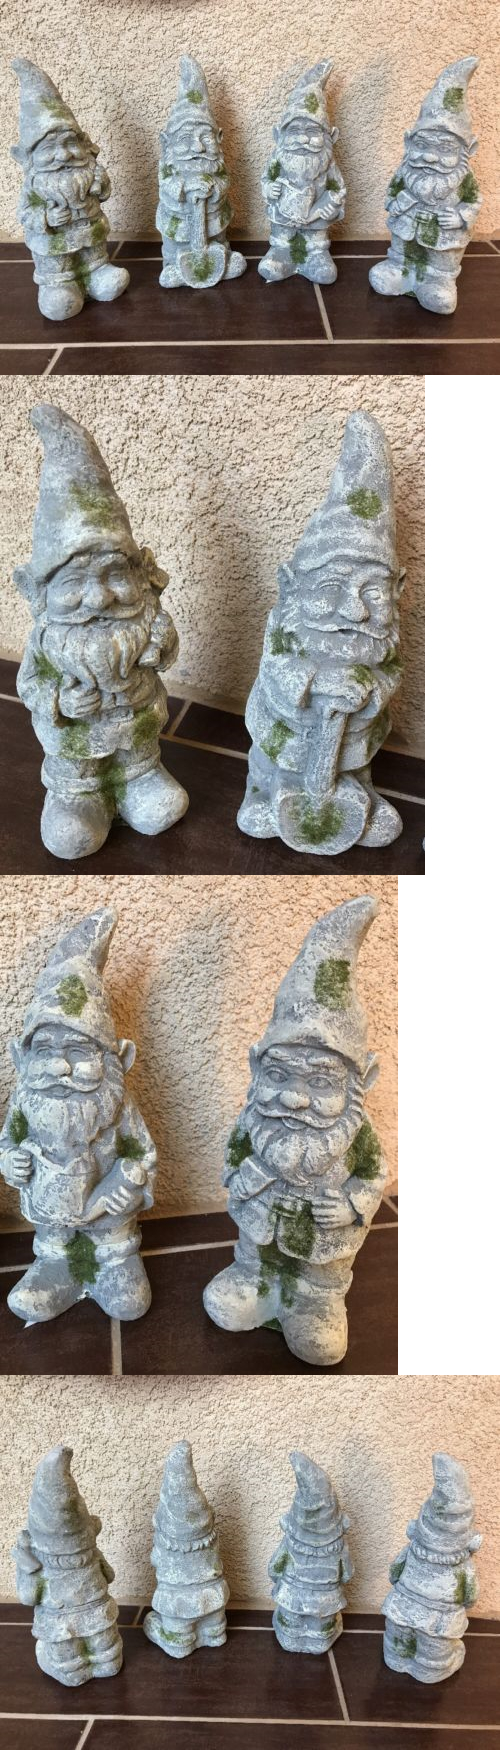 Outdoor decor statues - Statues And Lawn Ornaments 29511 Gnome 4 Pc Set Garden Outdoor Decor Large Builder Statue